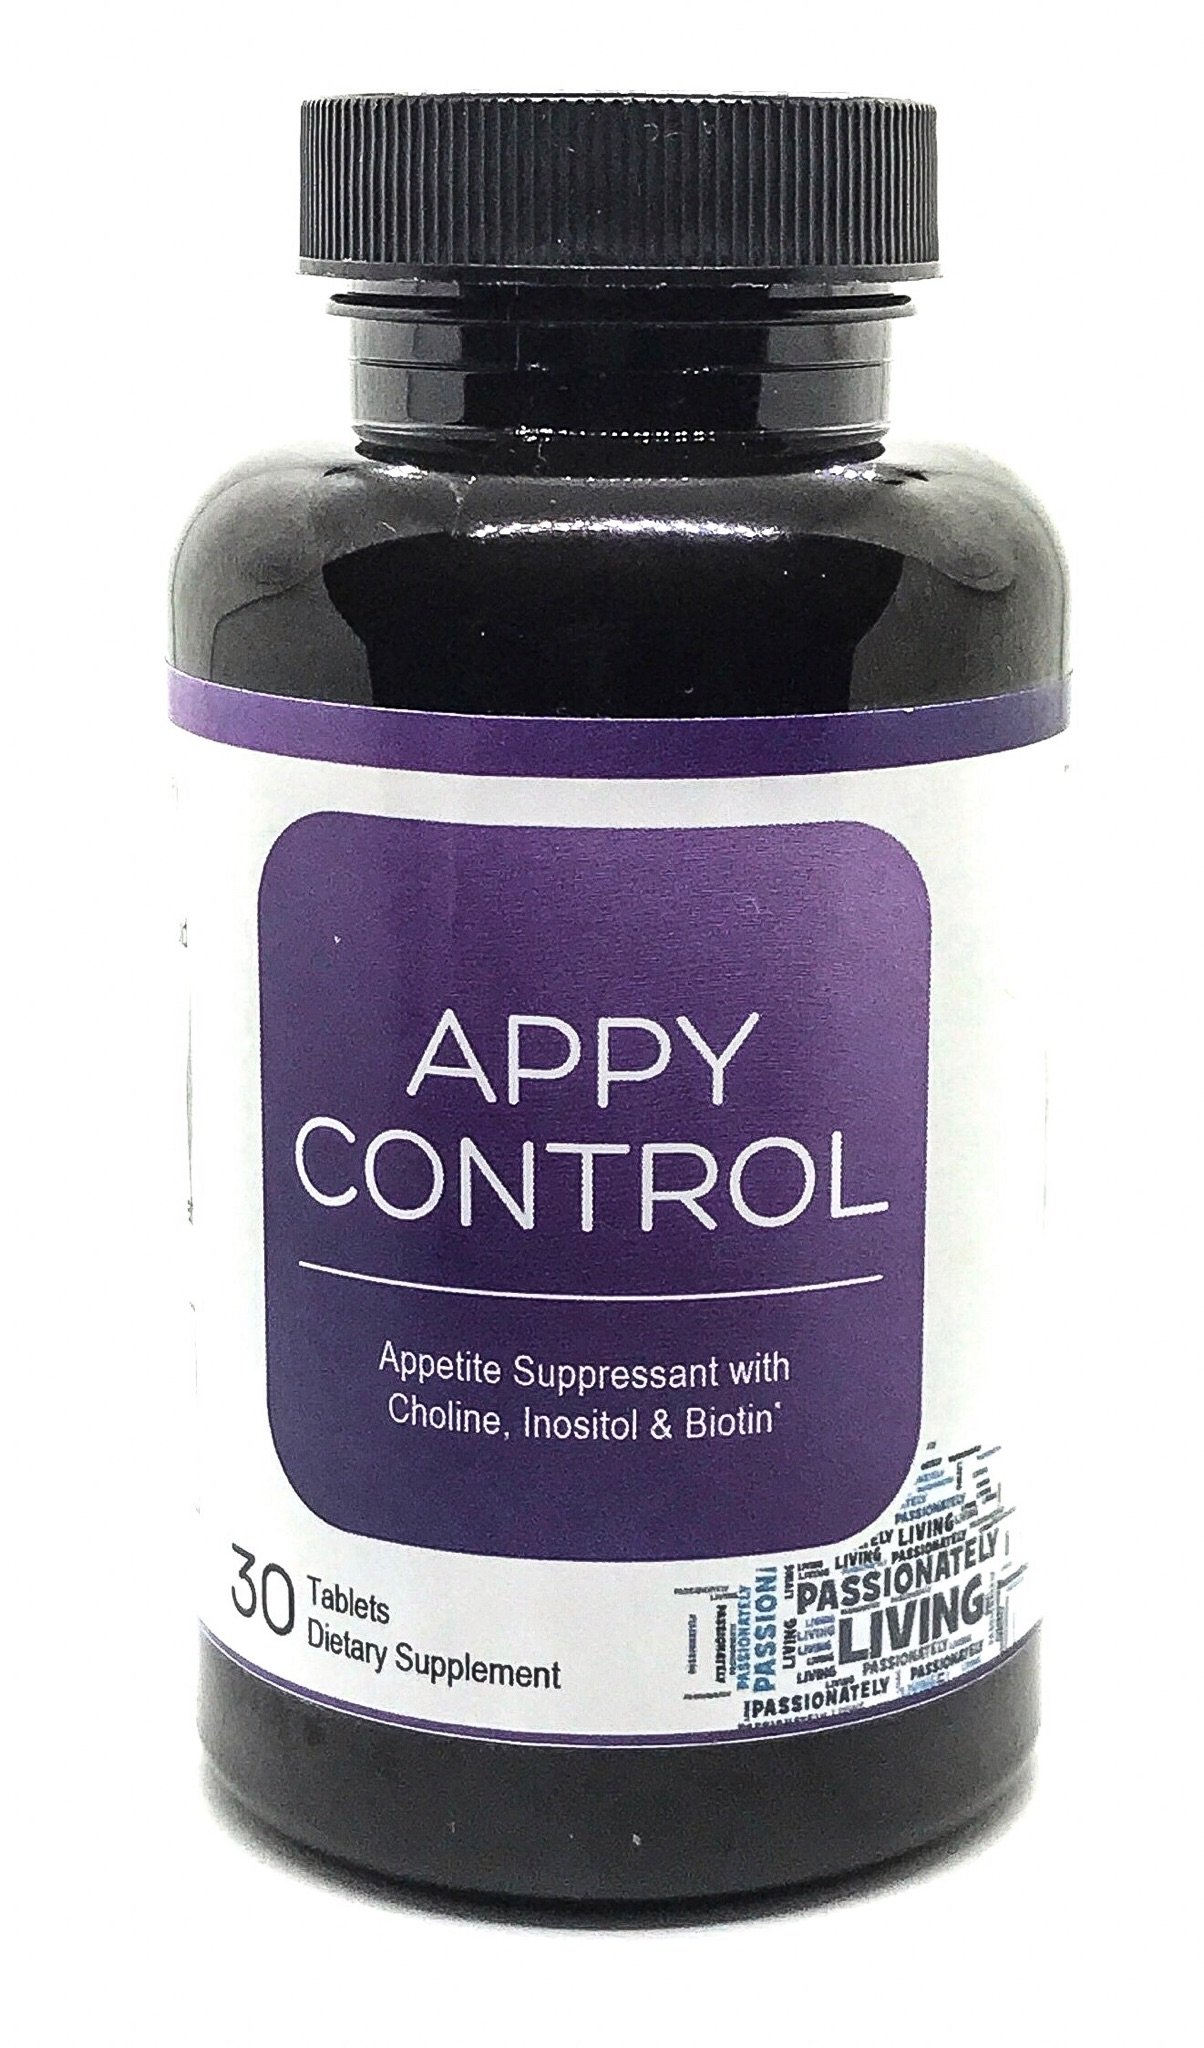 Appy Control Hunger Block Appetite Suppressant Weight Loss Aid